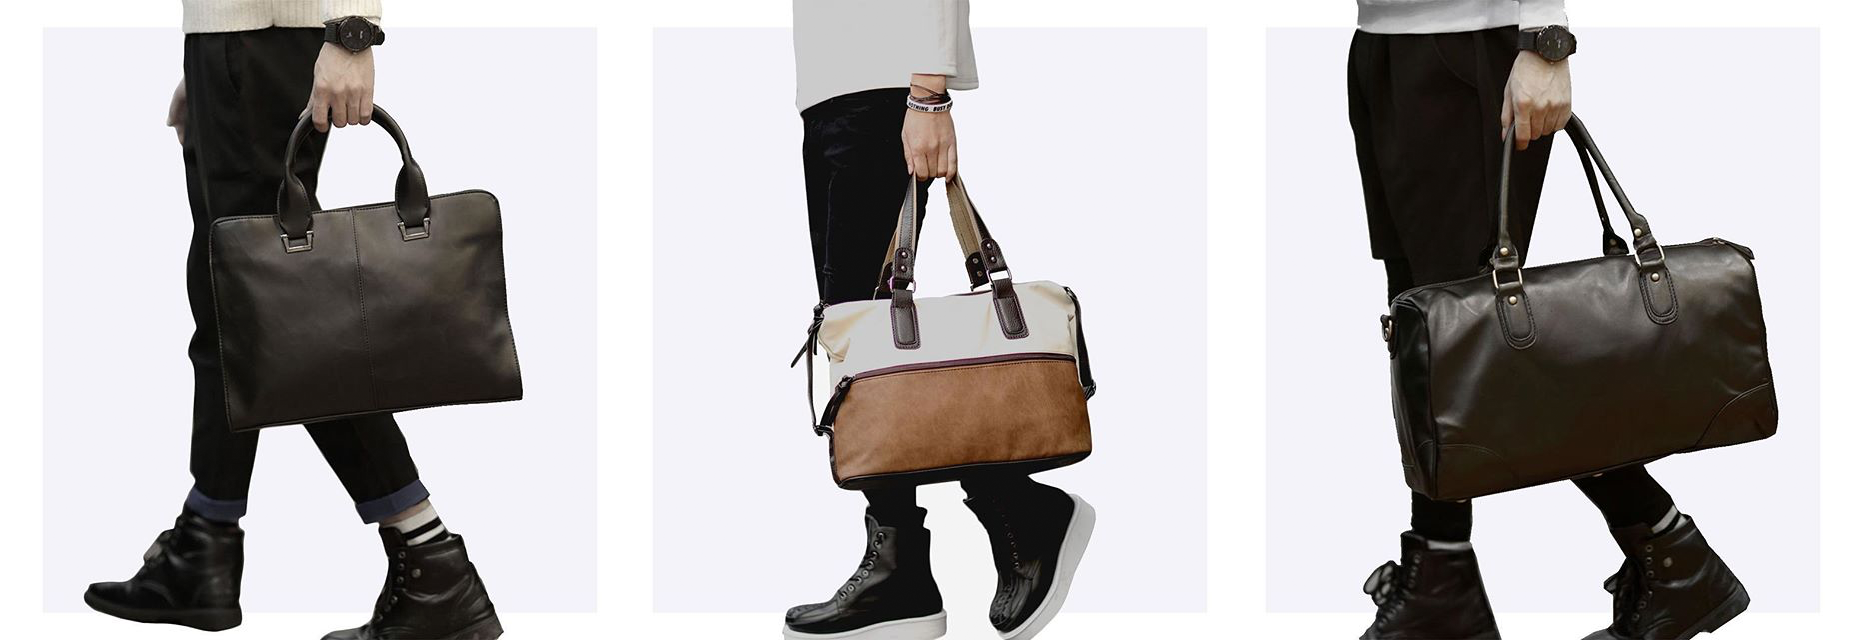 Tokyo Bags makes a variety of unisex bags for men and women, with a focus on urban minimalism.